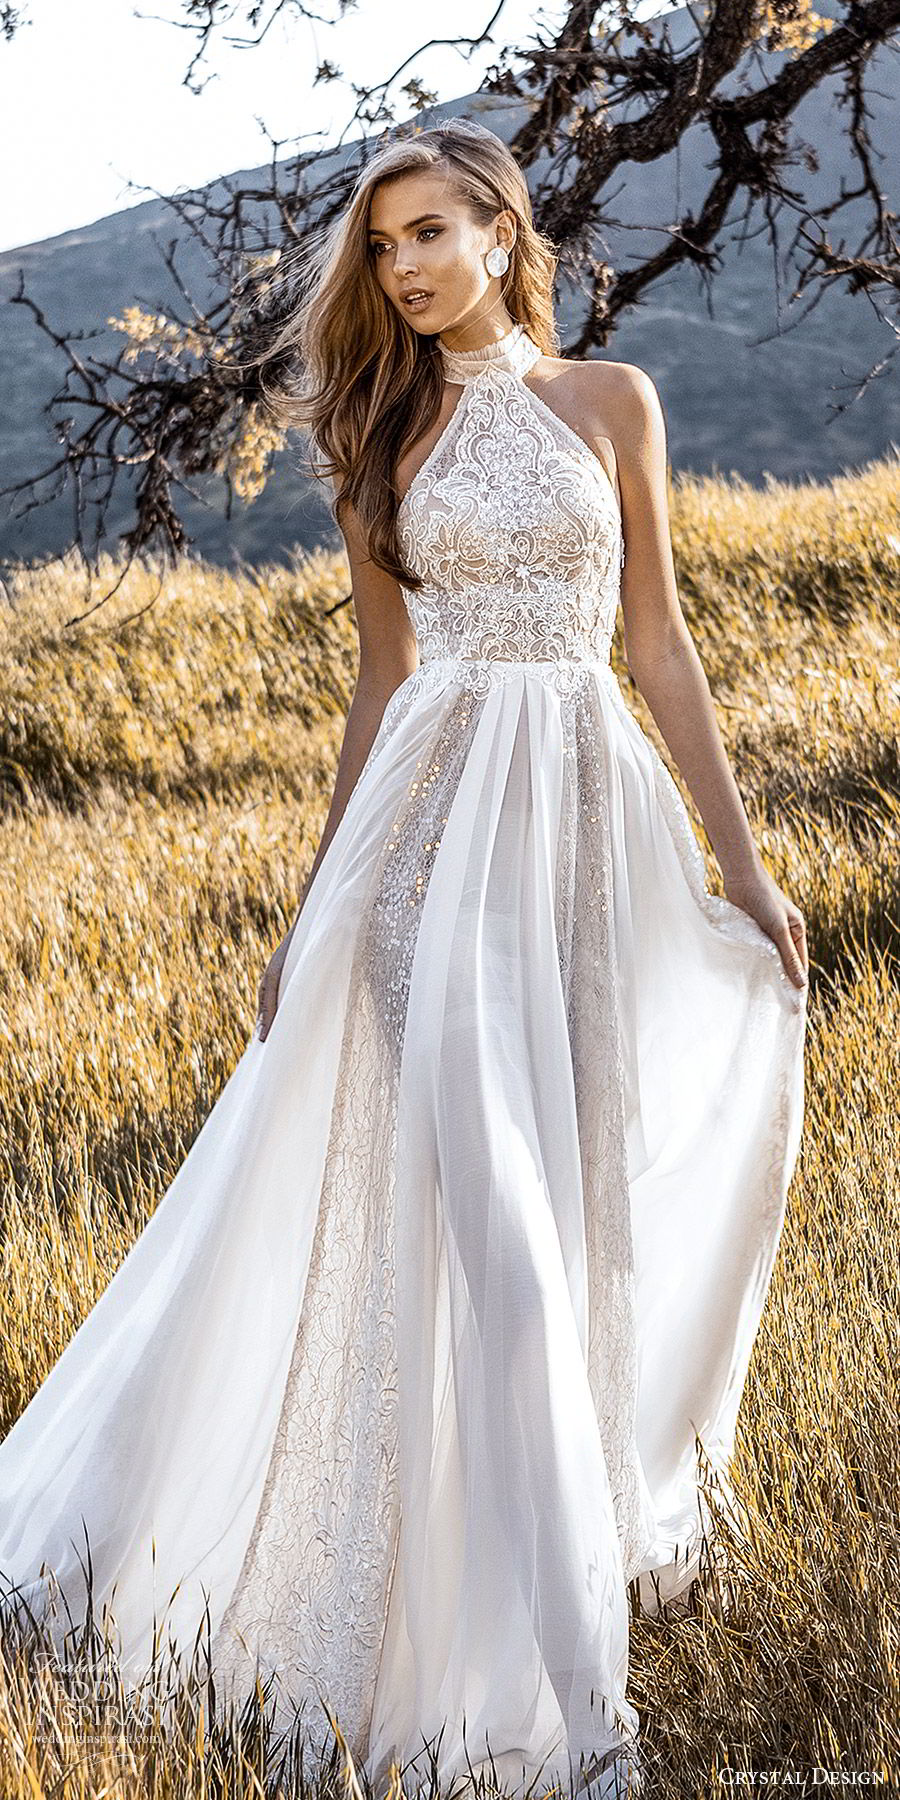 """Photo of Crystal Design Couture 2020 Wedding Dresses — """"Catching the Wind"""" Bridal Collection 